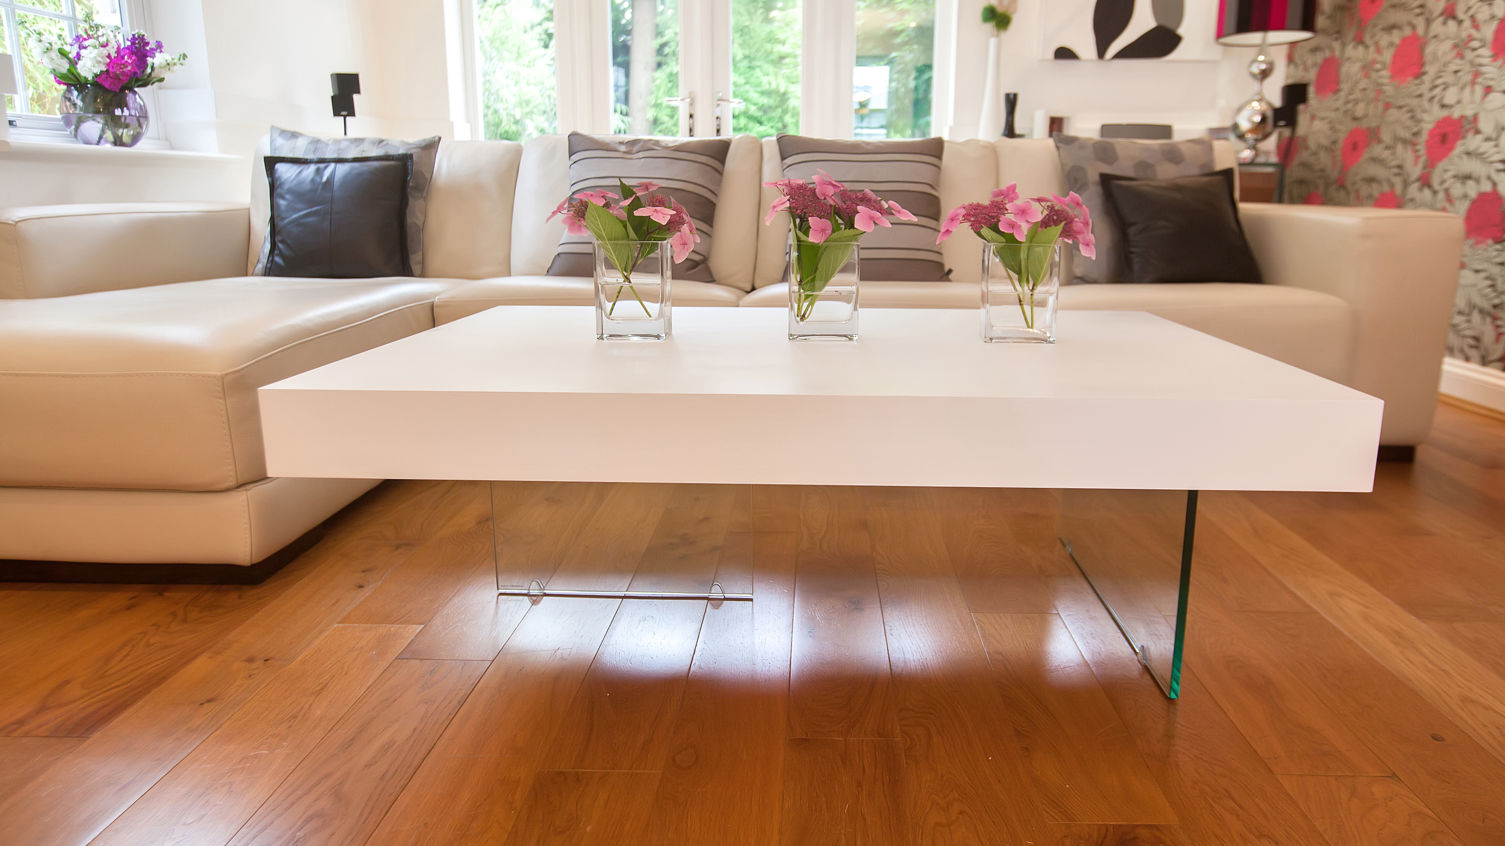 Pink Flowers on White Large Coffee Table near Modern Sectional Sofa on Laminate Teak Flooring